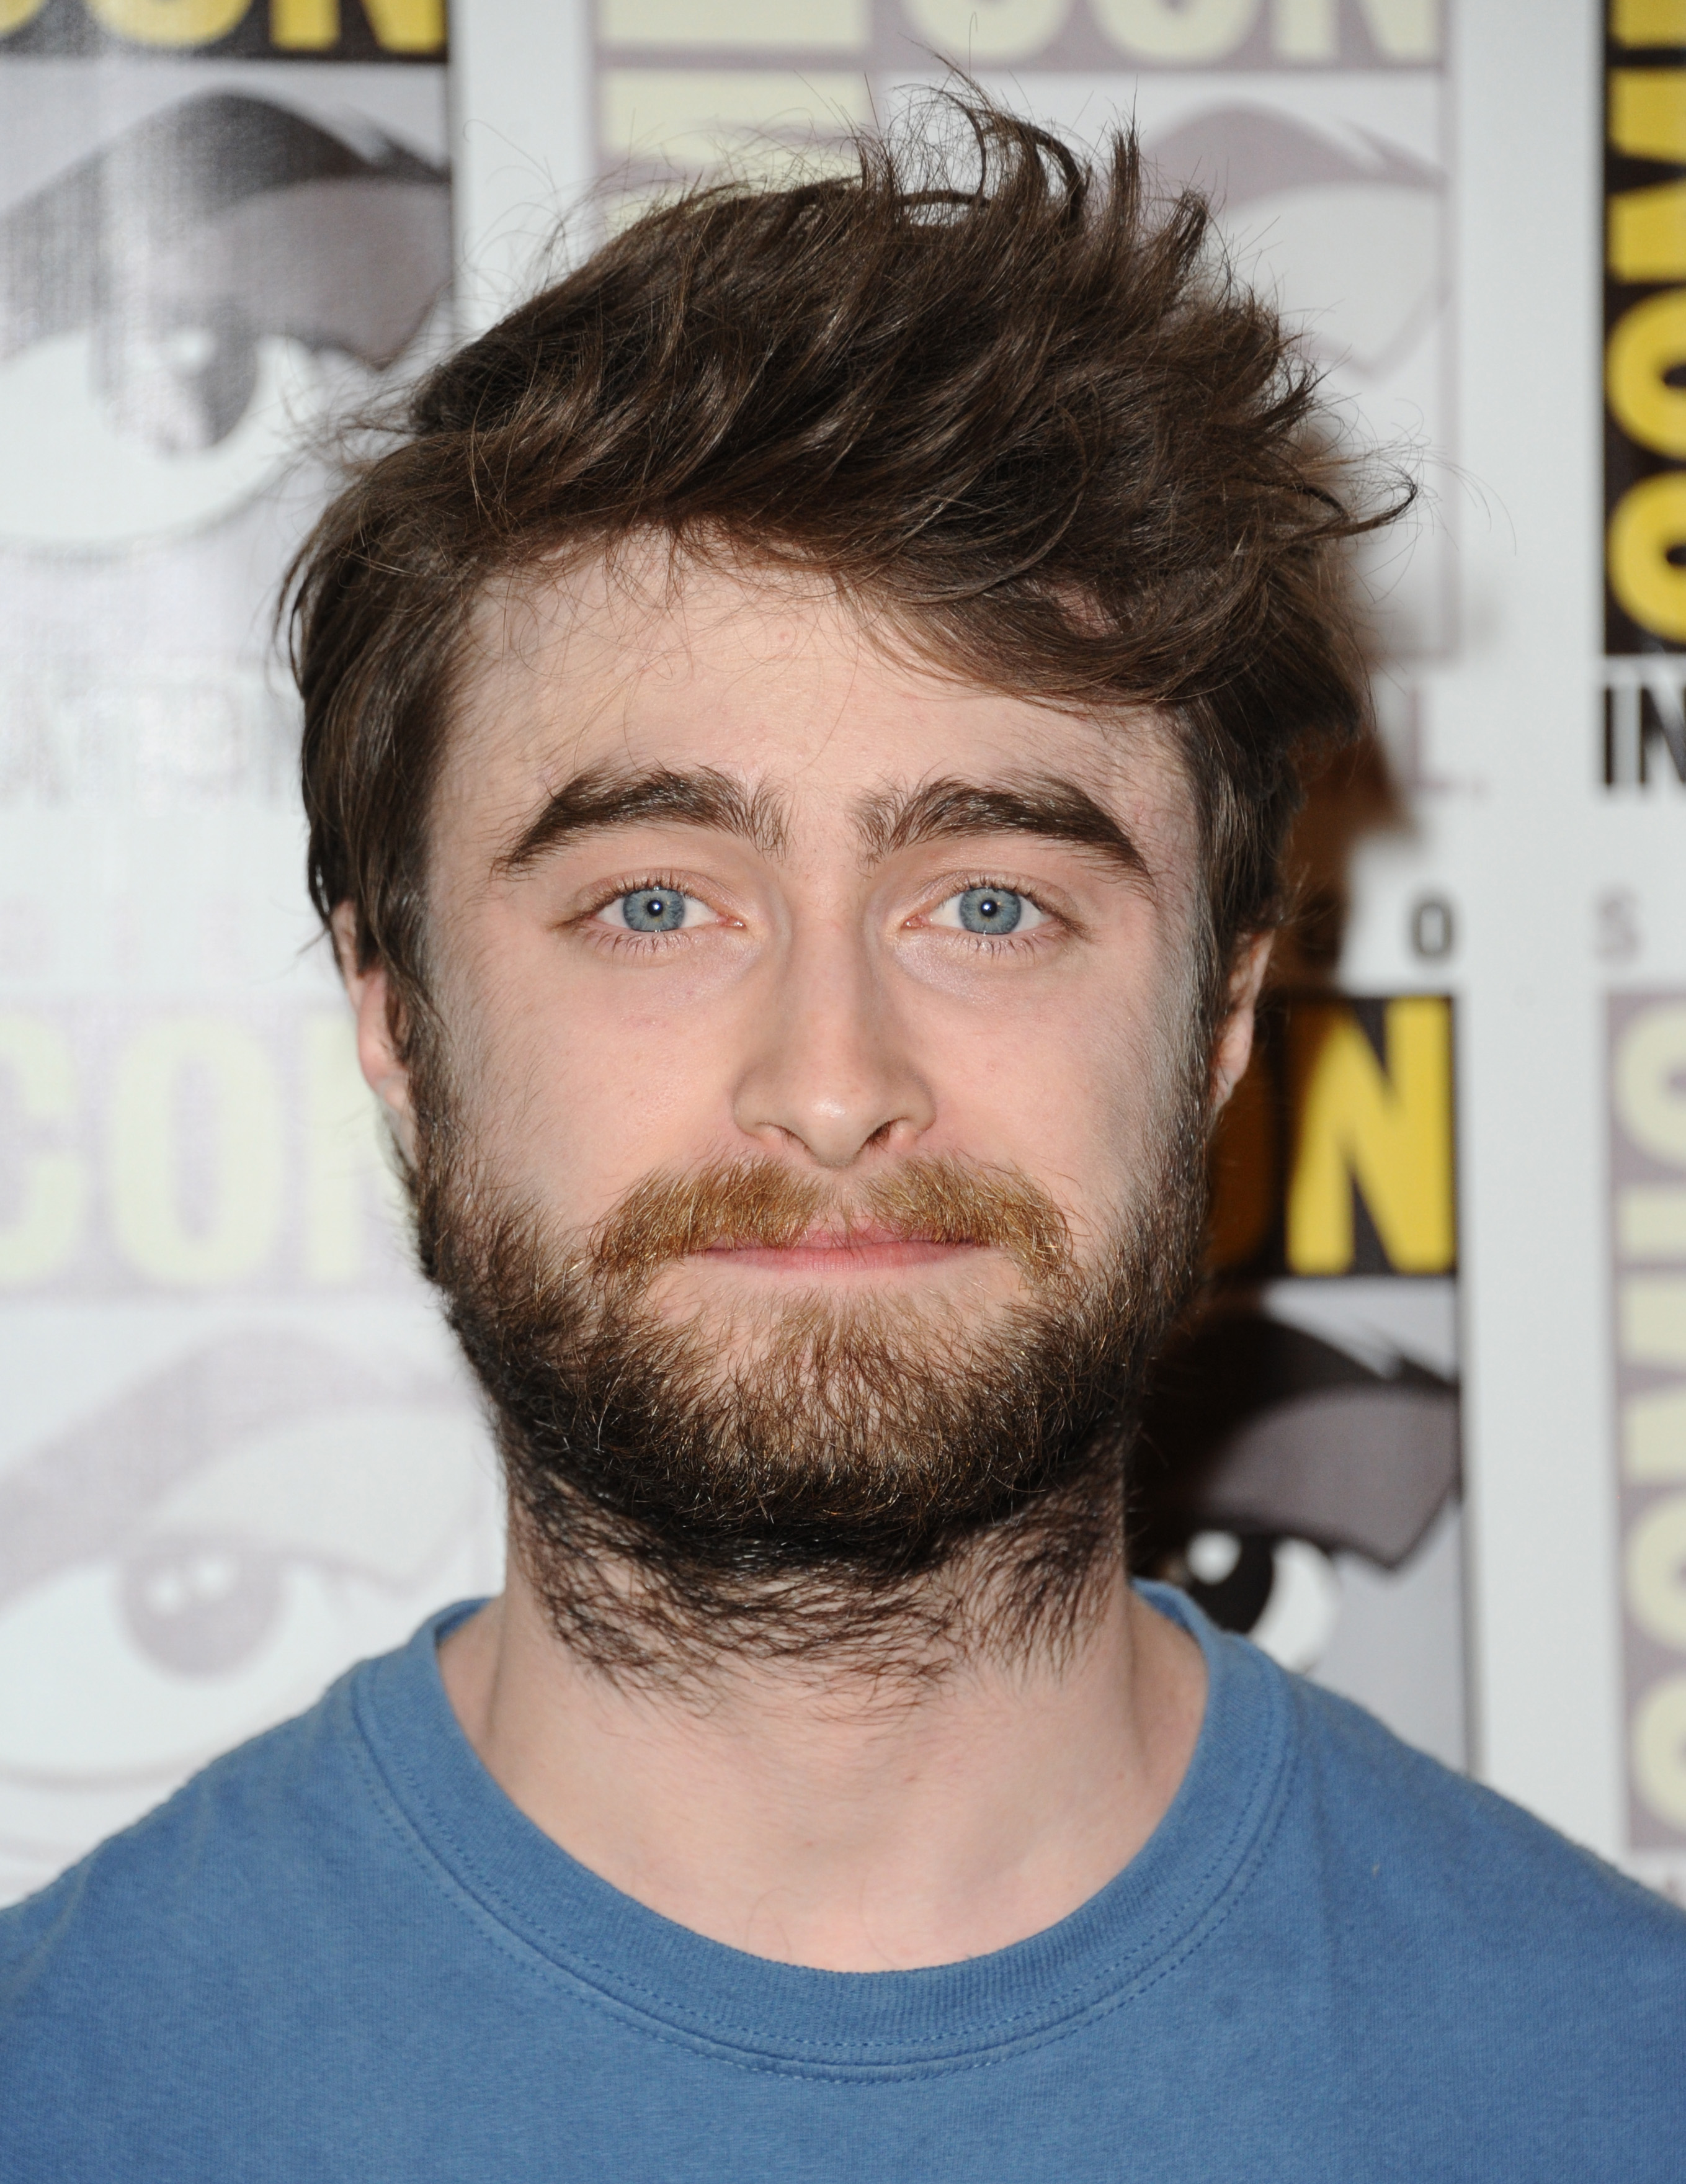 Daniel Radcliffe at Comic-Con International in San Diego on July 11, 2015.